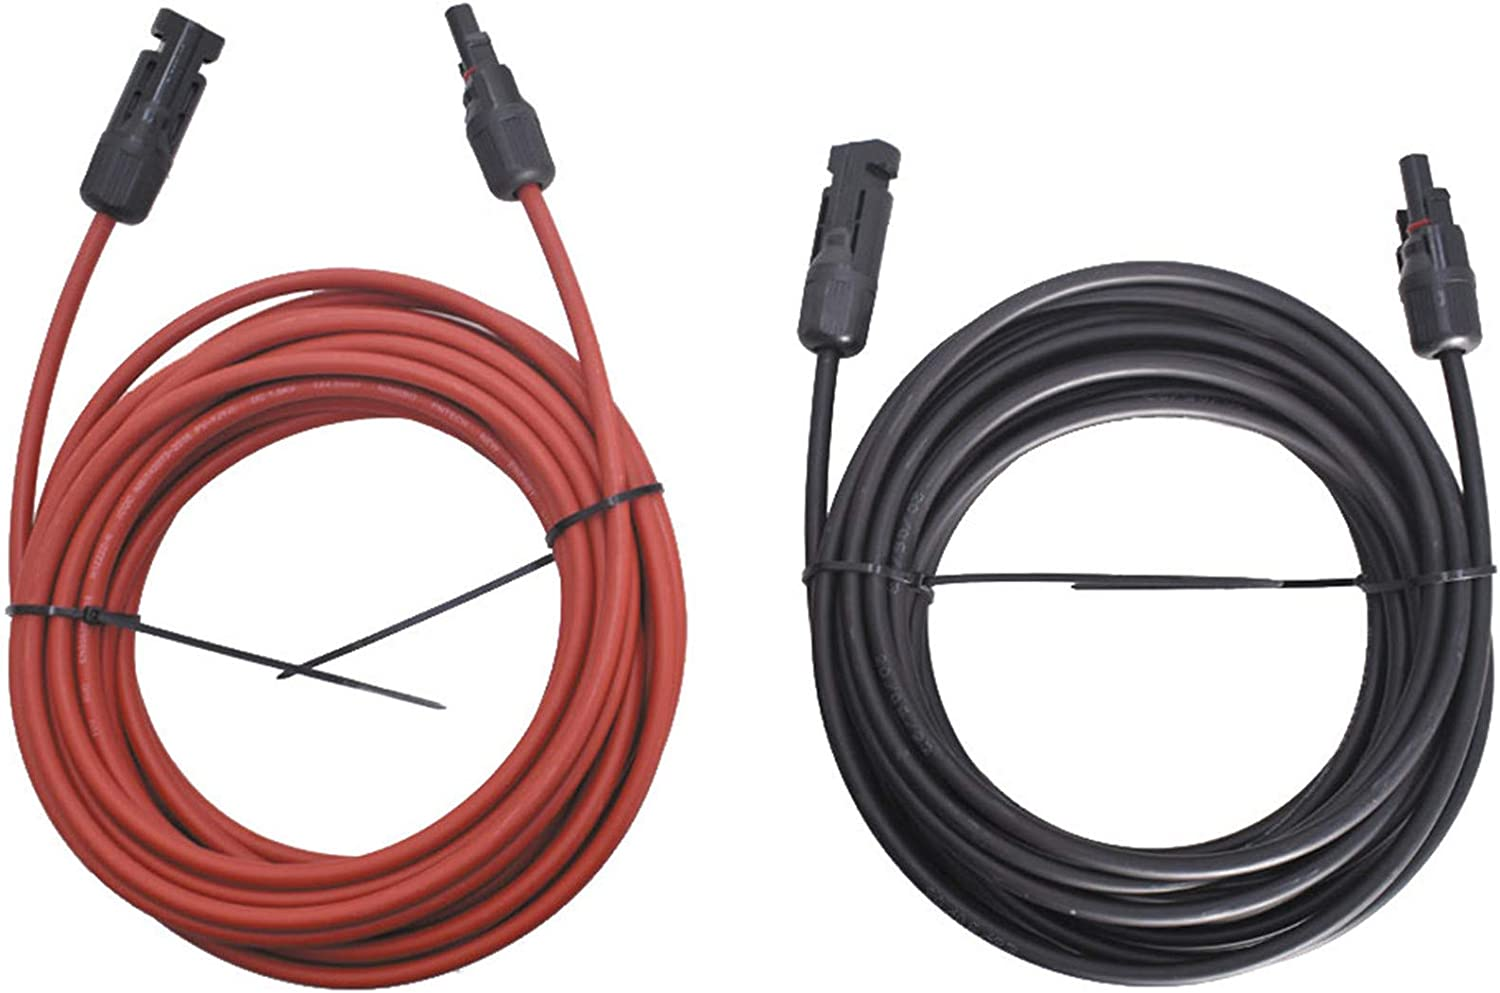 WFLNHB 30FT 12AWG Black Long Beach Mall service + Red Gauge Panel Solar Extension Cab 12